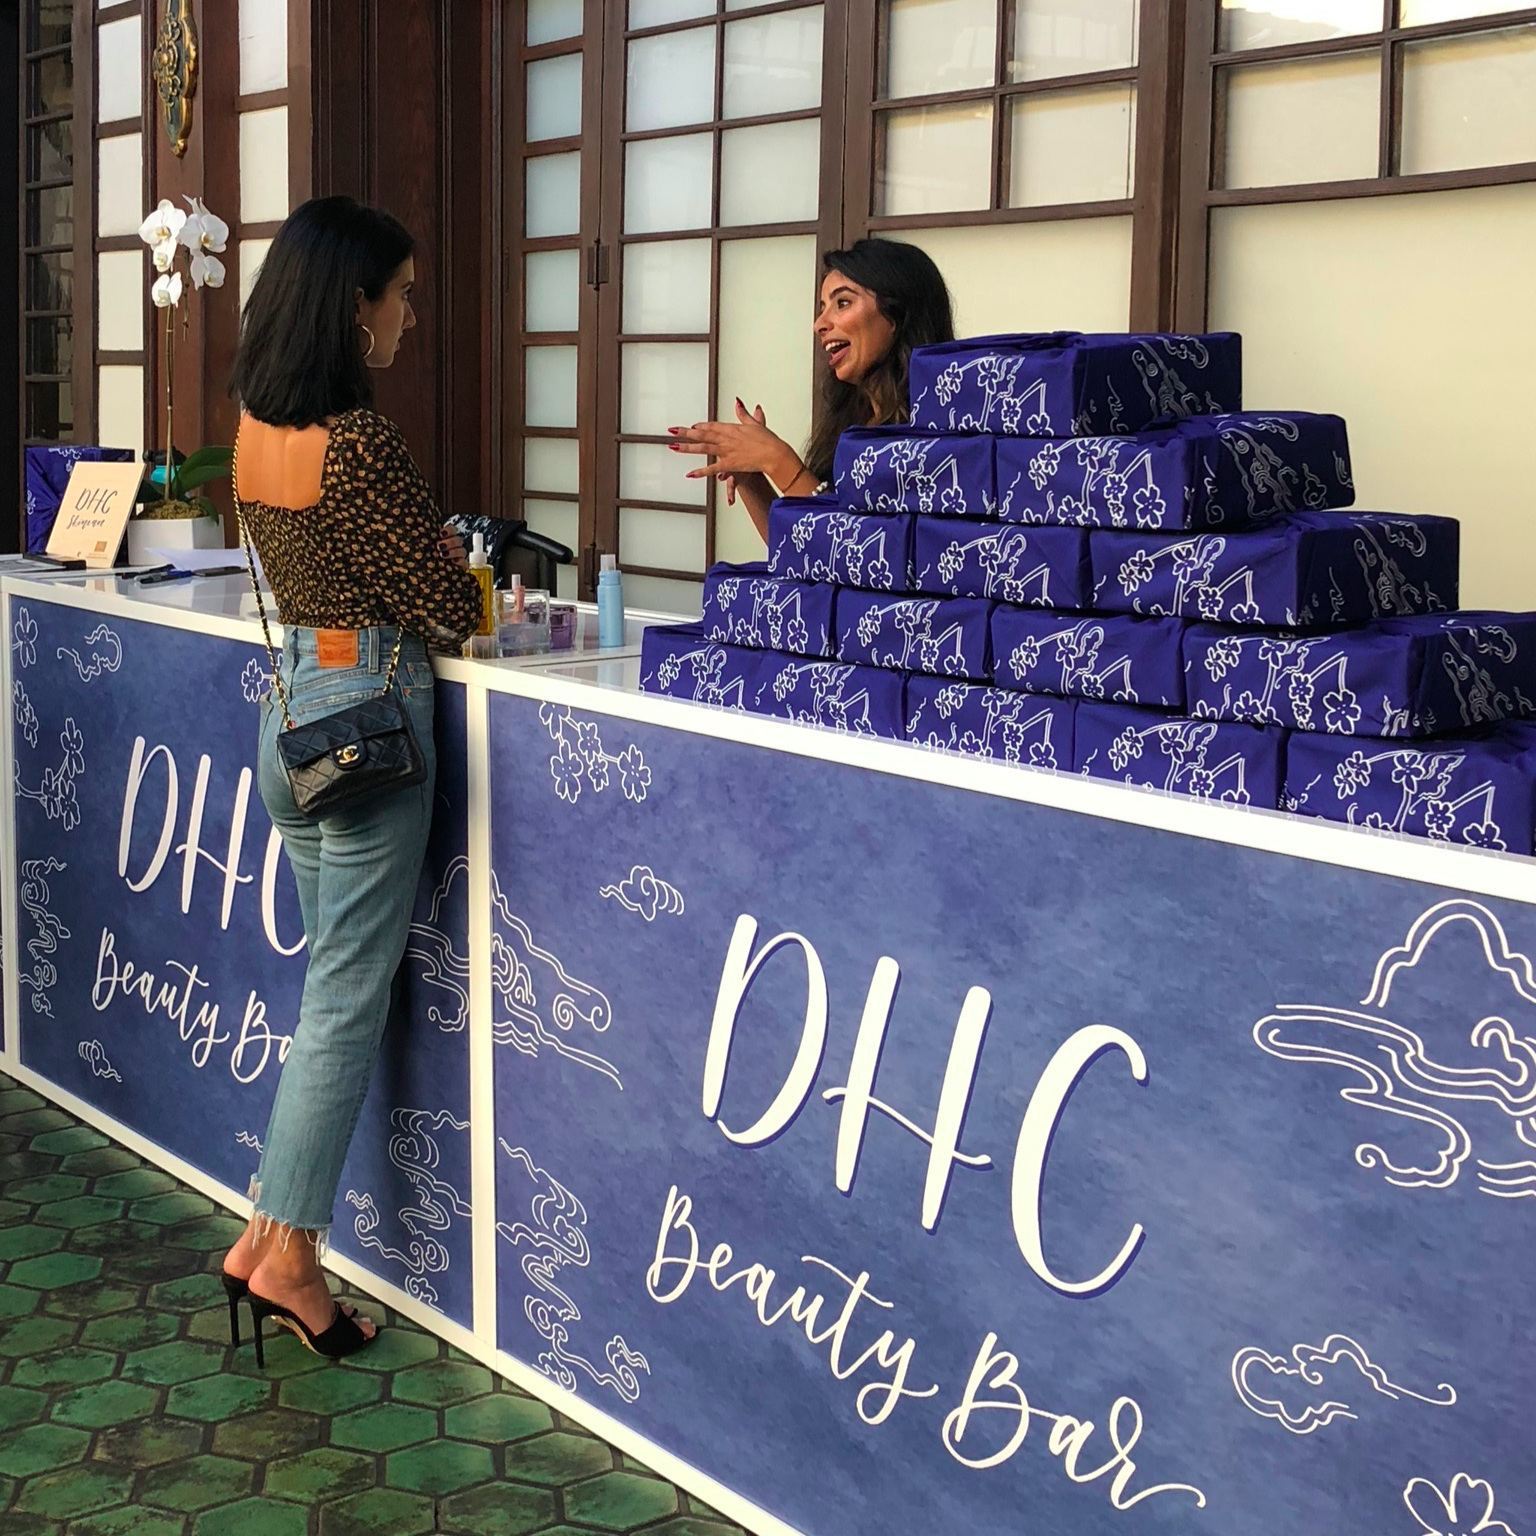 DHC Skincare Influencer's Event, Yamashiro Hollywood